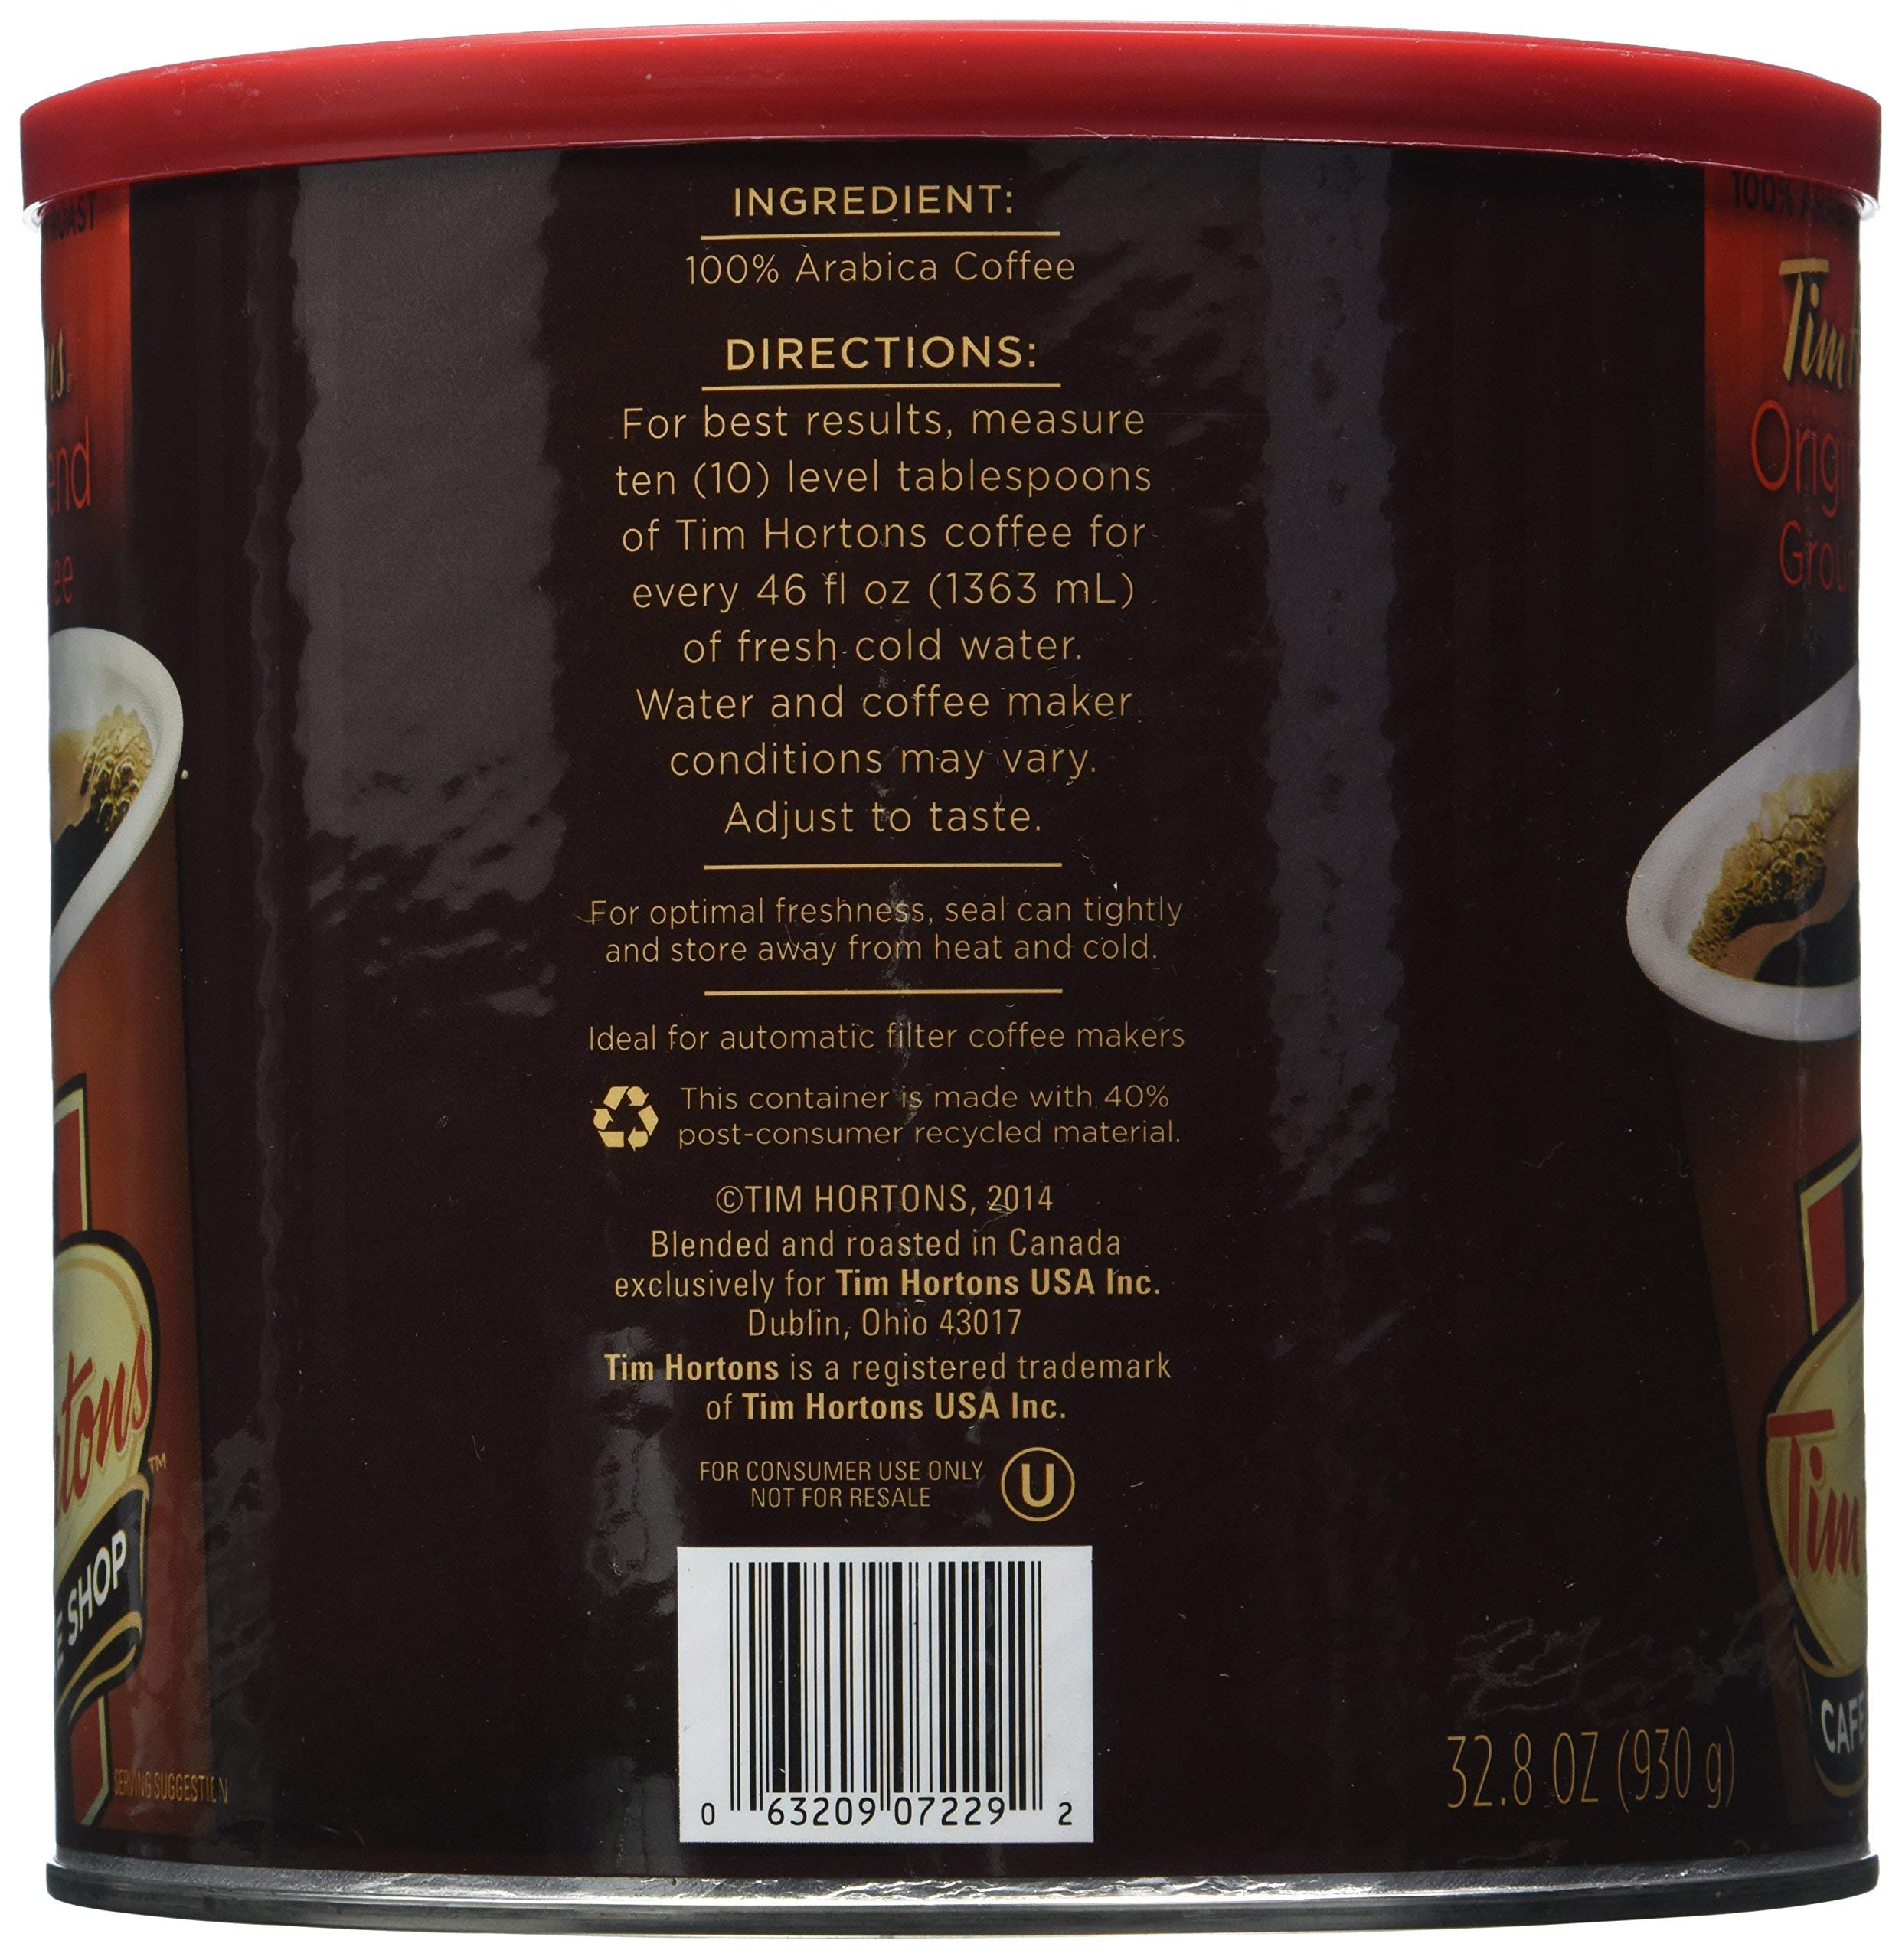 Tim Hortons HBRKMMCX 100% Arabica Medium Roast Original Blend Ground Coffee, 32.8 Ounce, Pack of 2 by Tim Hortons (Image #4)